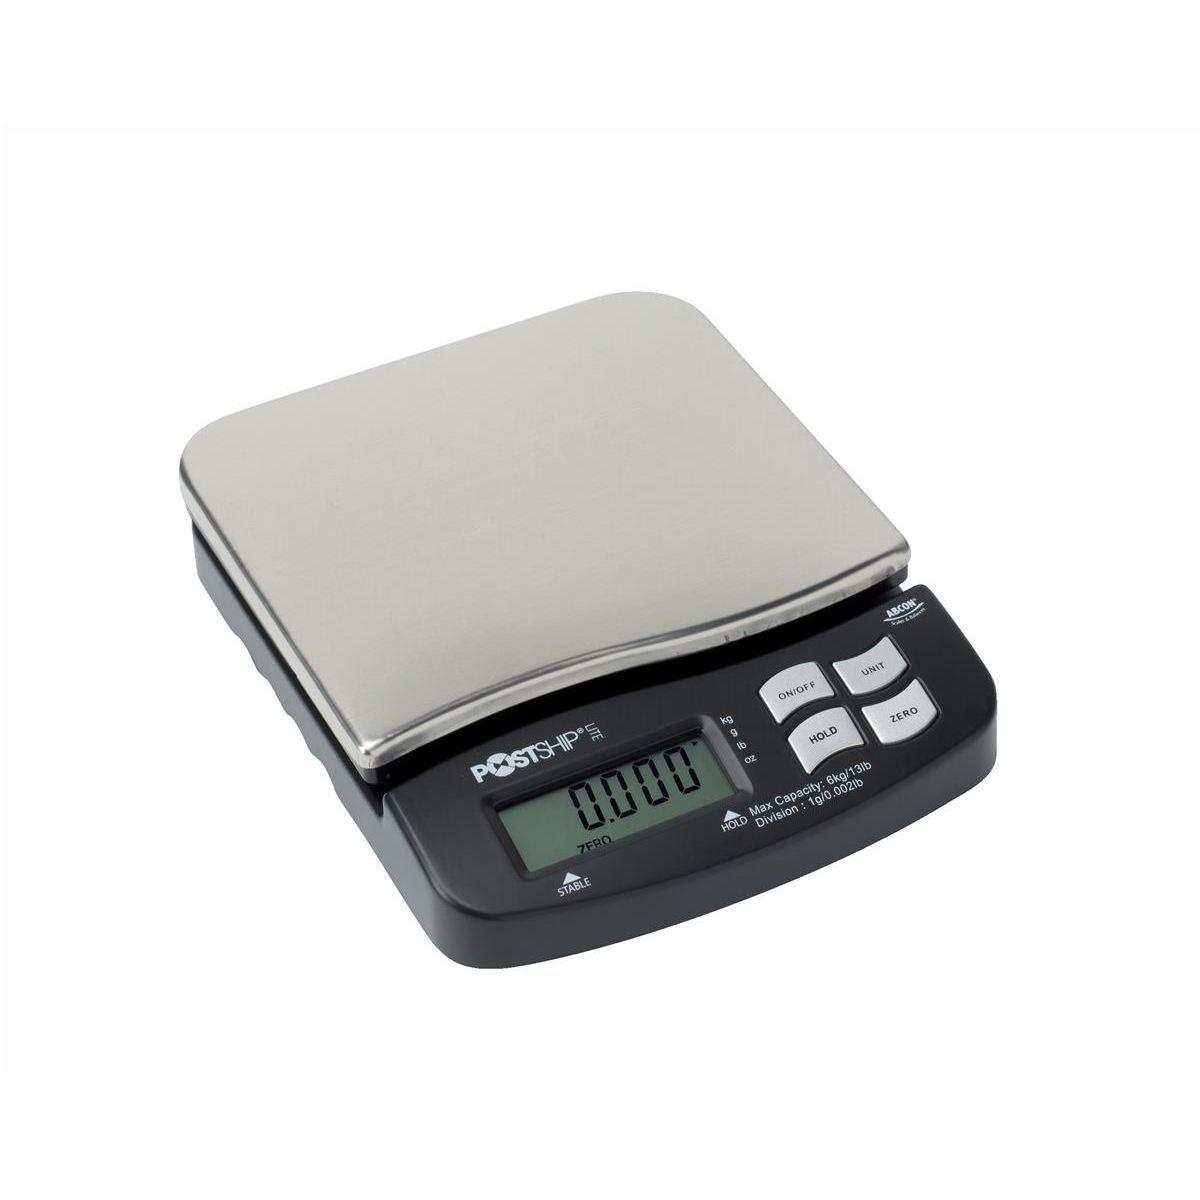 Postship Lite Scale 1g Increments Capacity 6kg Display Chrome and Black Ref PSL60